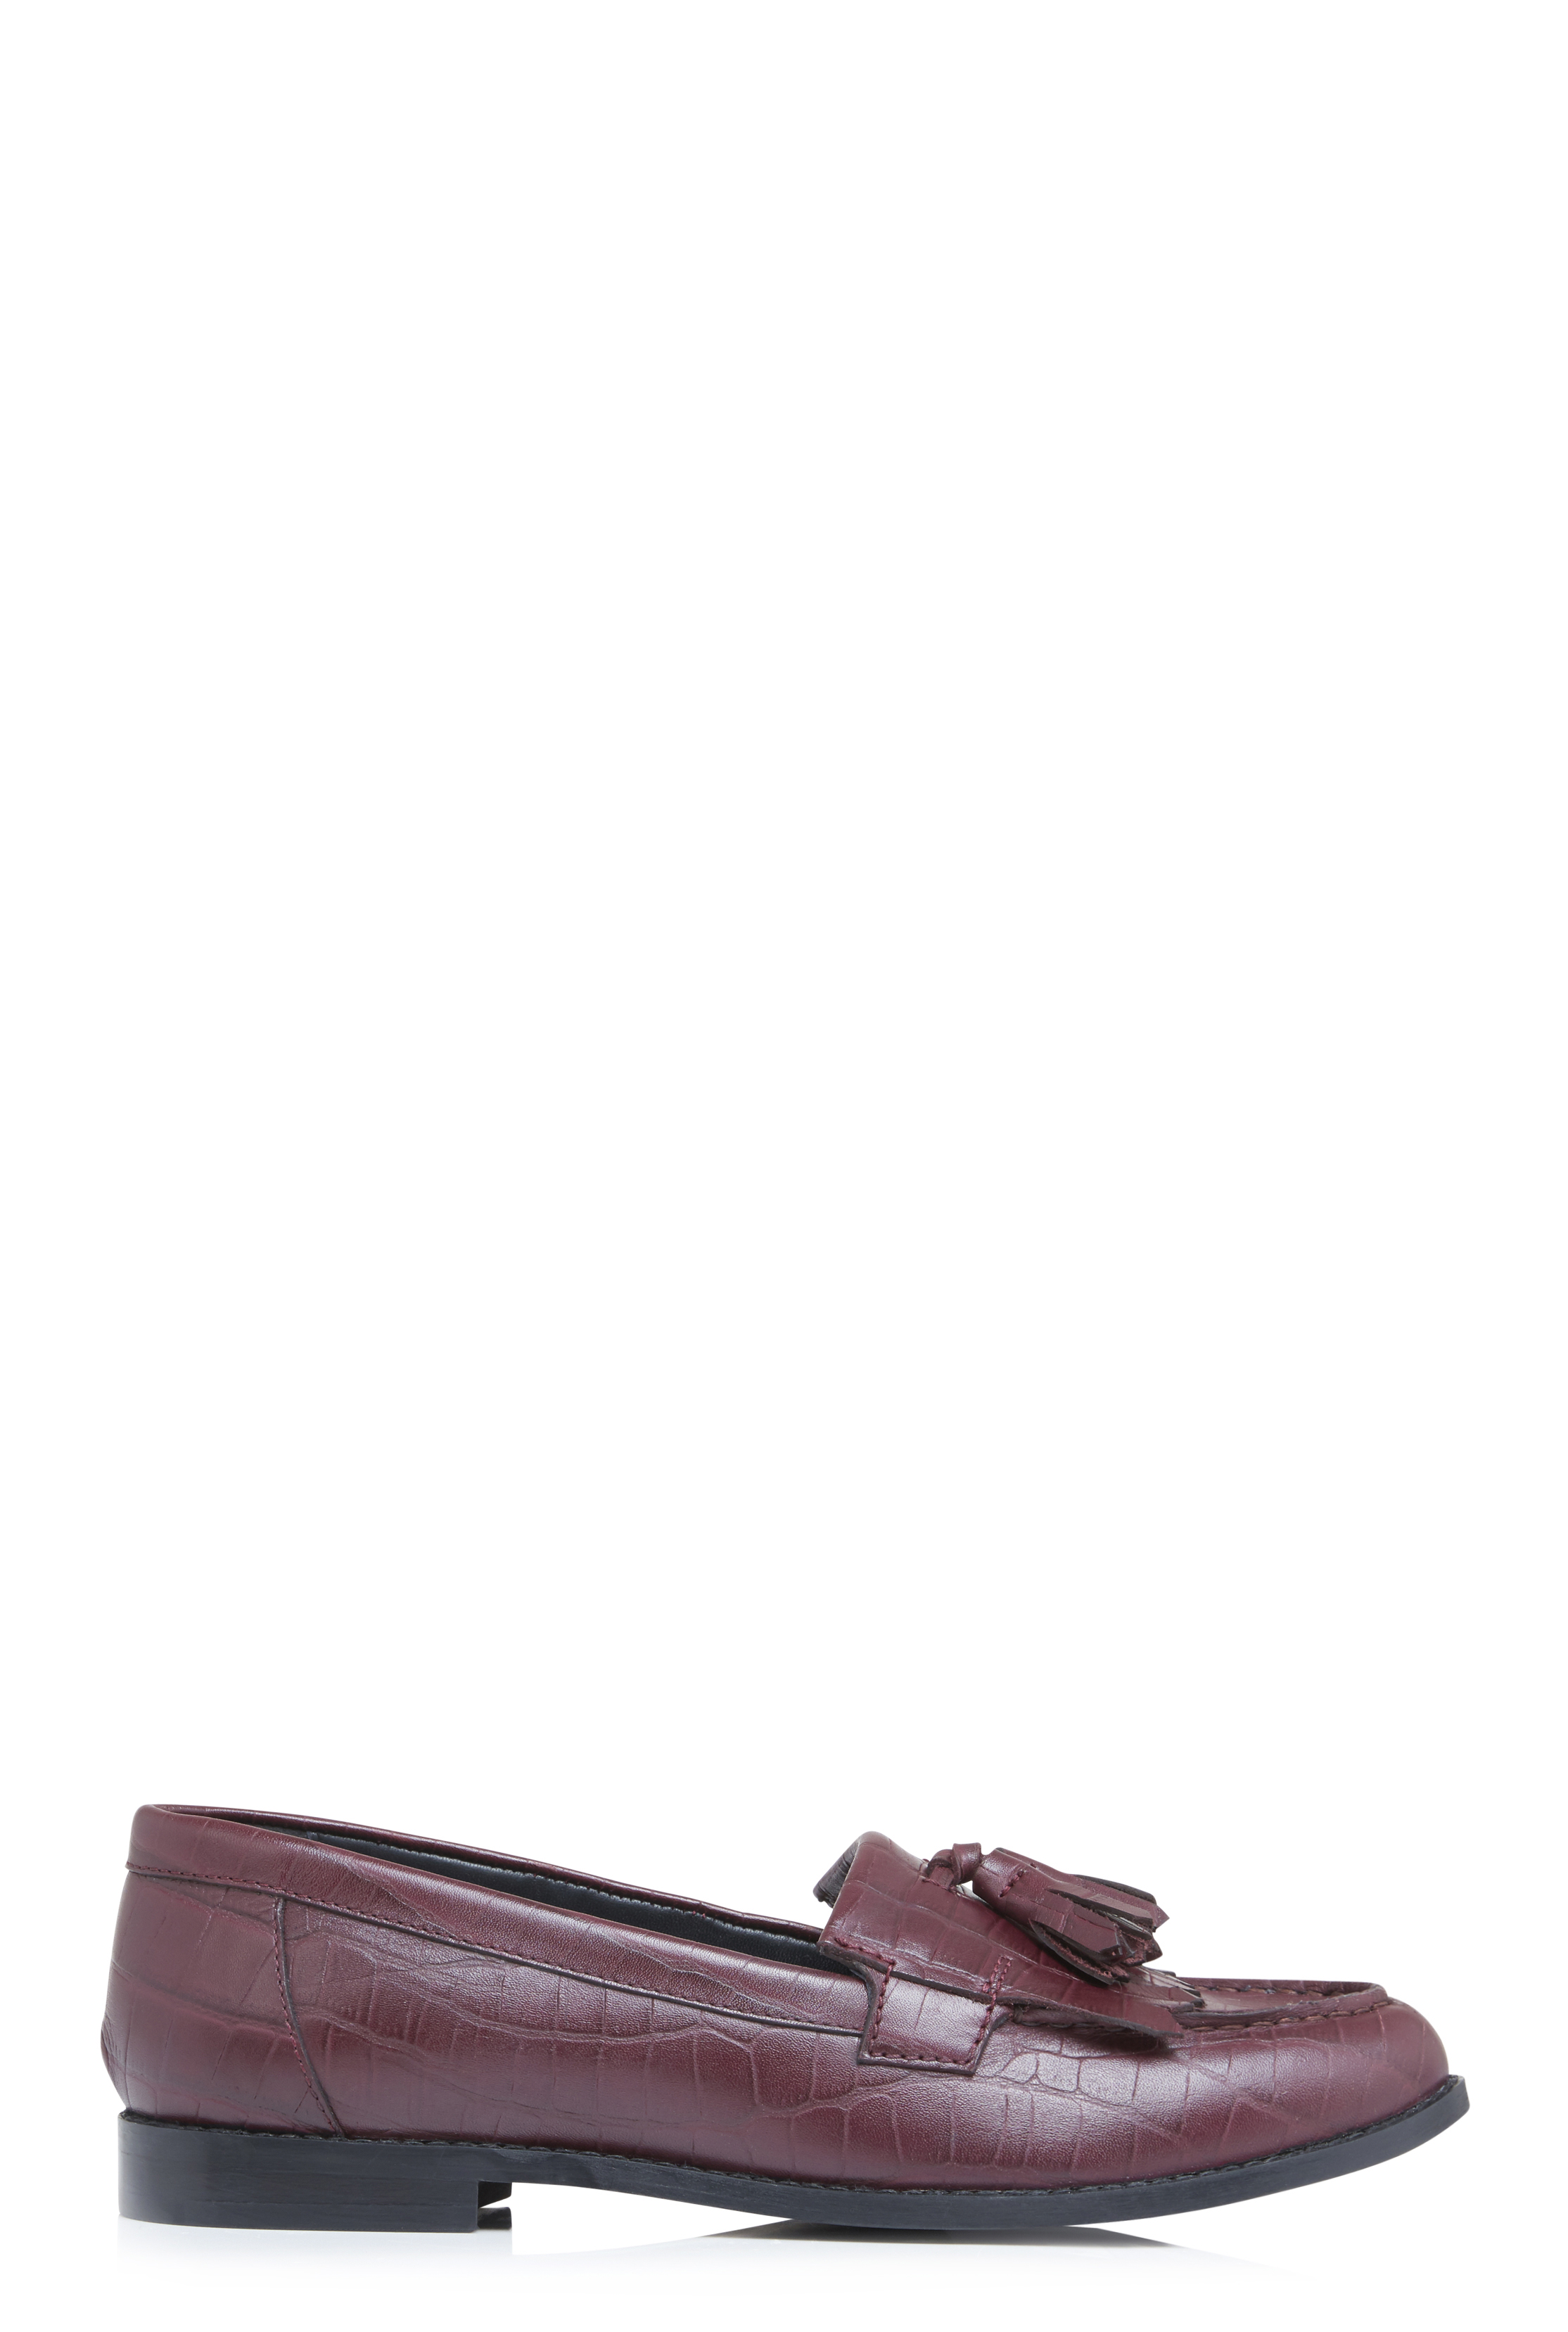 LTS Kira Tassel Trim Leather Loafer